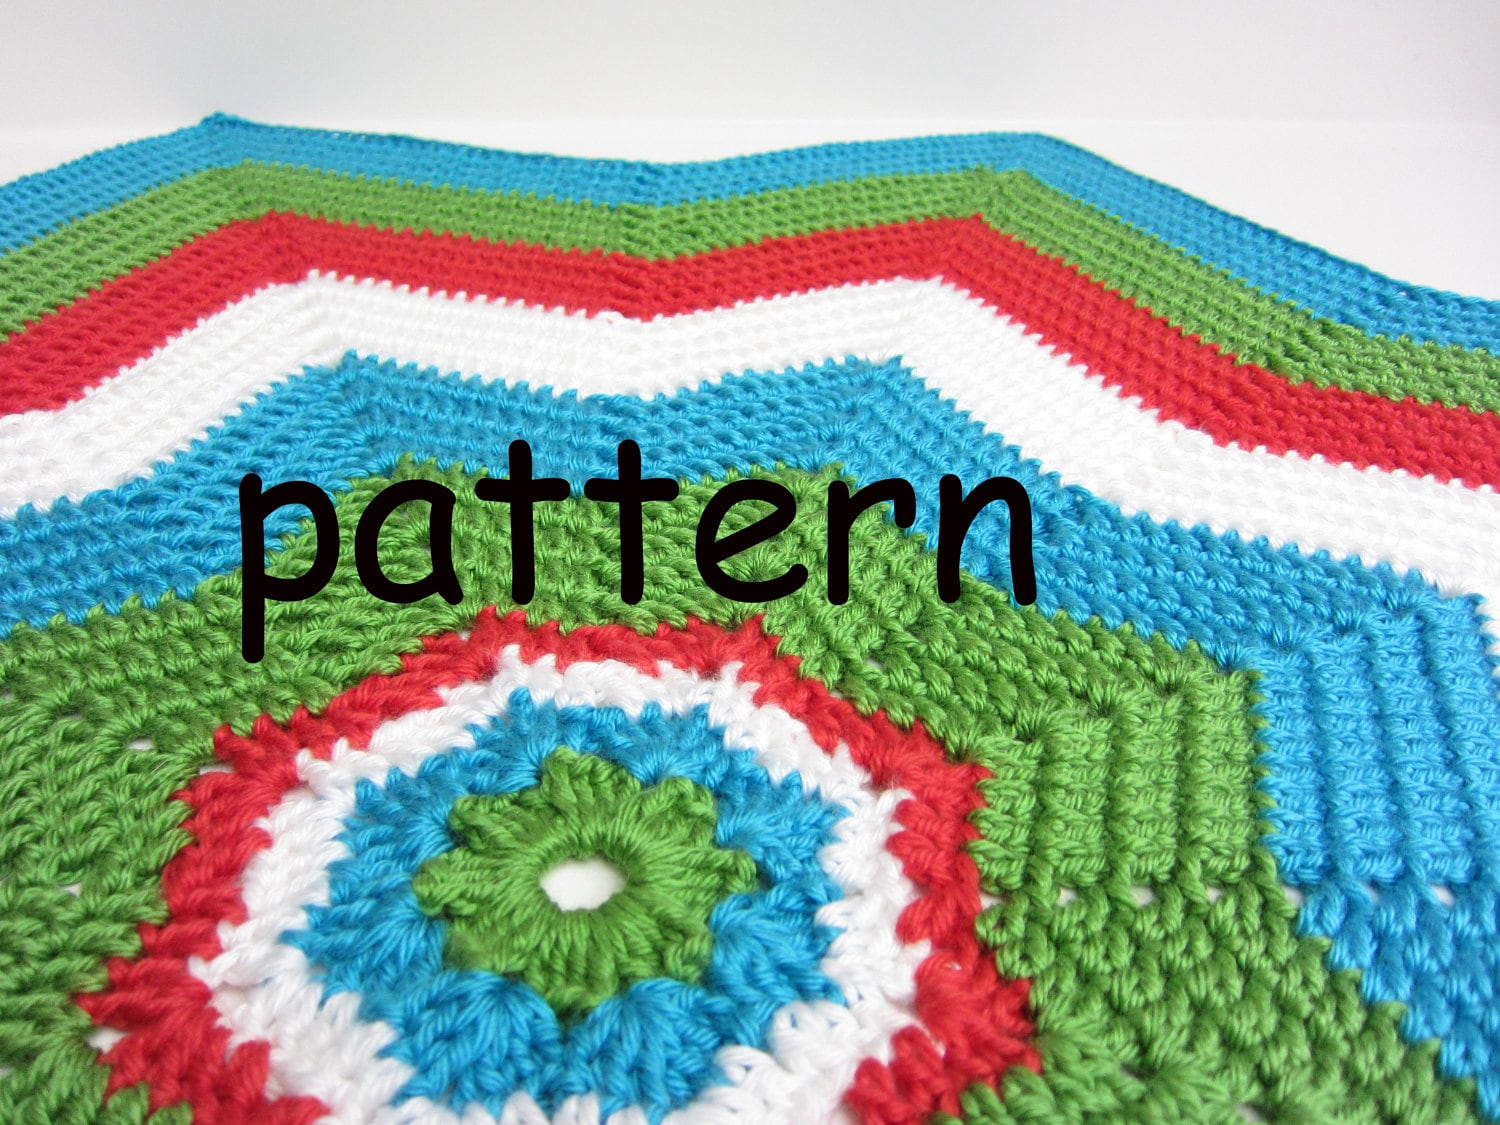 star crochet pattern 8 point star afghan bright and bold